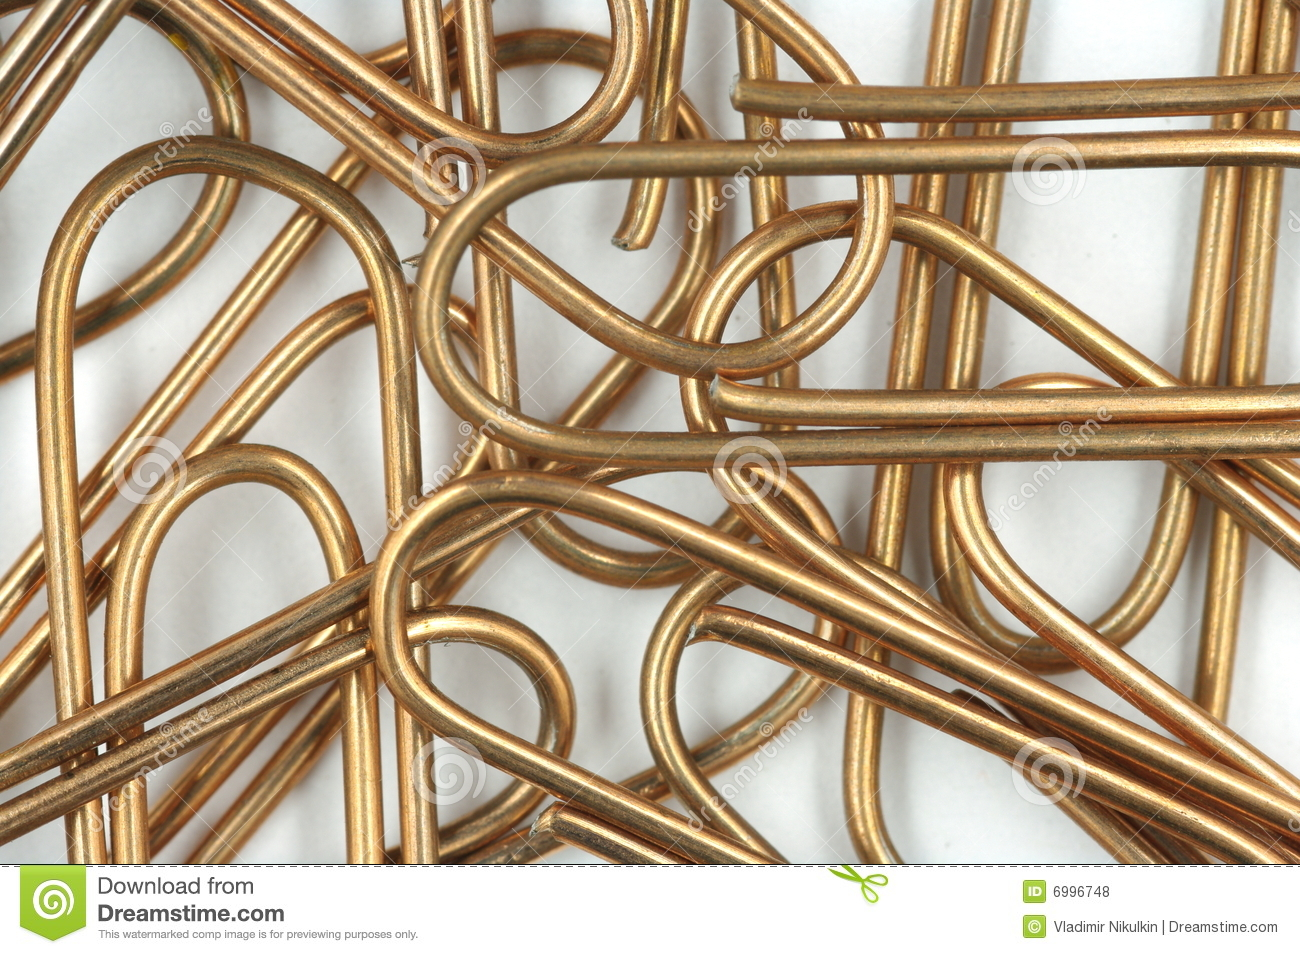 Copper Writing Paper Clips Royalty Free Stock Photos - Image: 6996748